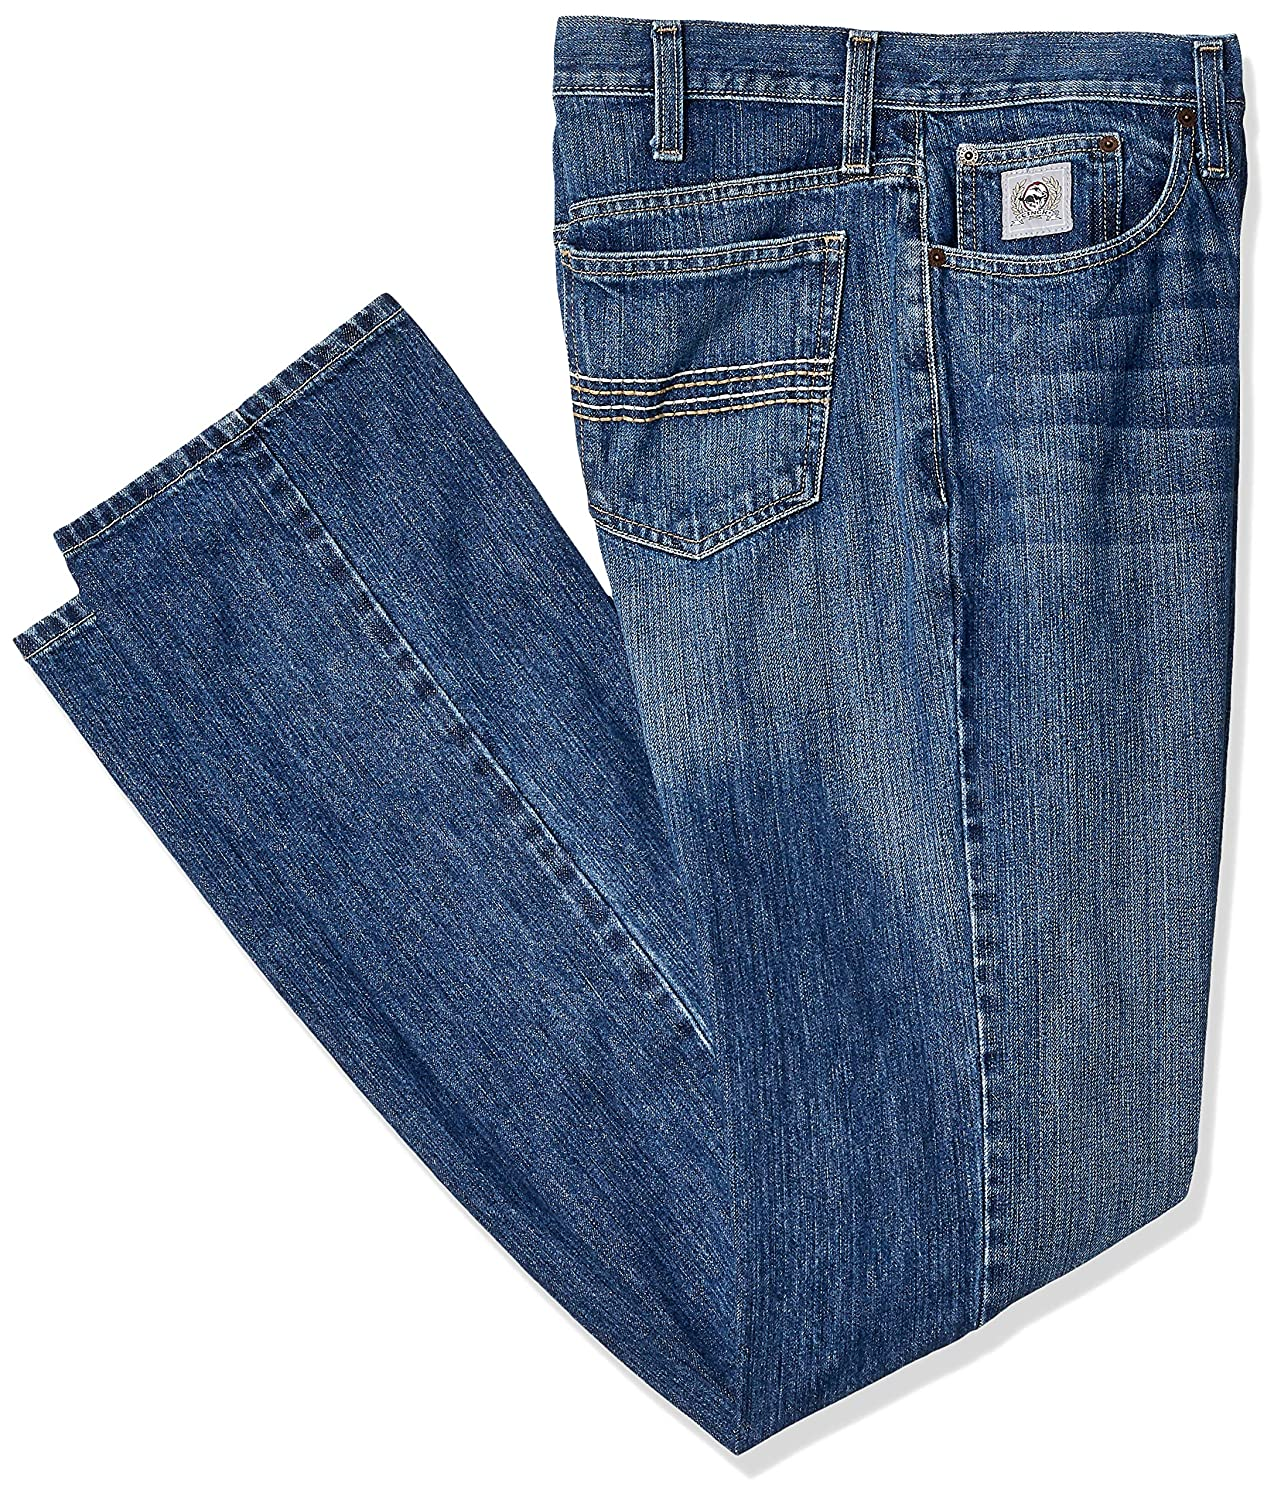 1b1e671c Cinch Mens Silver Label Slim Fit Jeans Jeans: Amazon.ca: Clothing &  Accessories